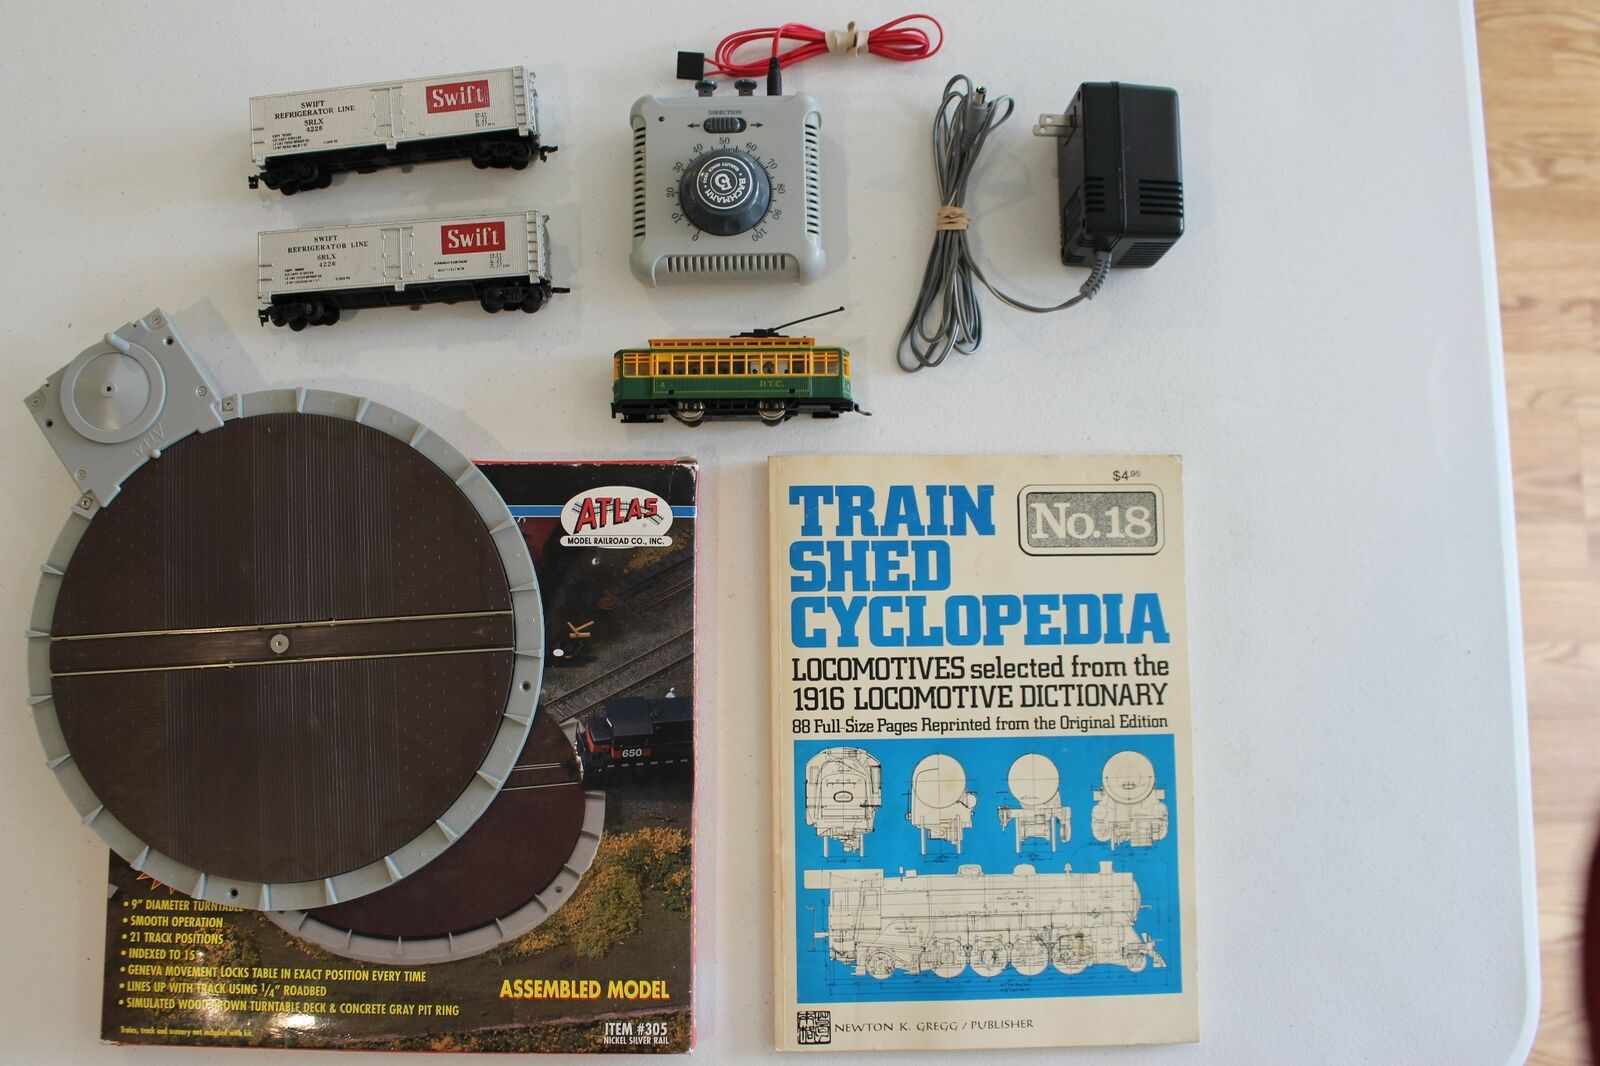 LOT of VARIOUS HO TRAIN MEMORBILIA  TURNTABLE, libro, REFRIGERATOR autoS & MORE